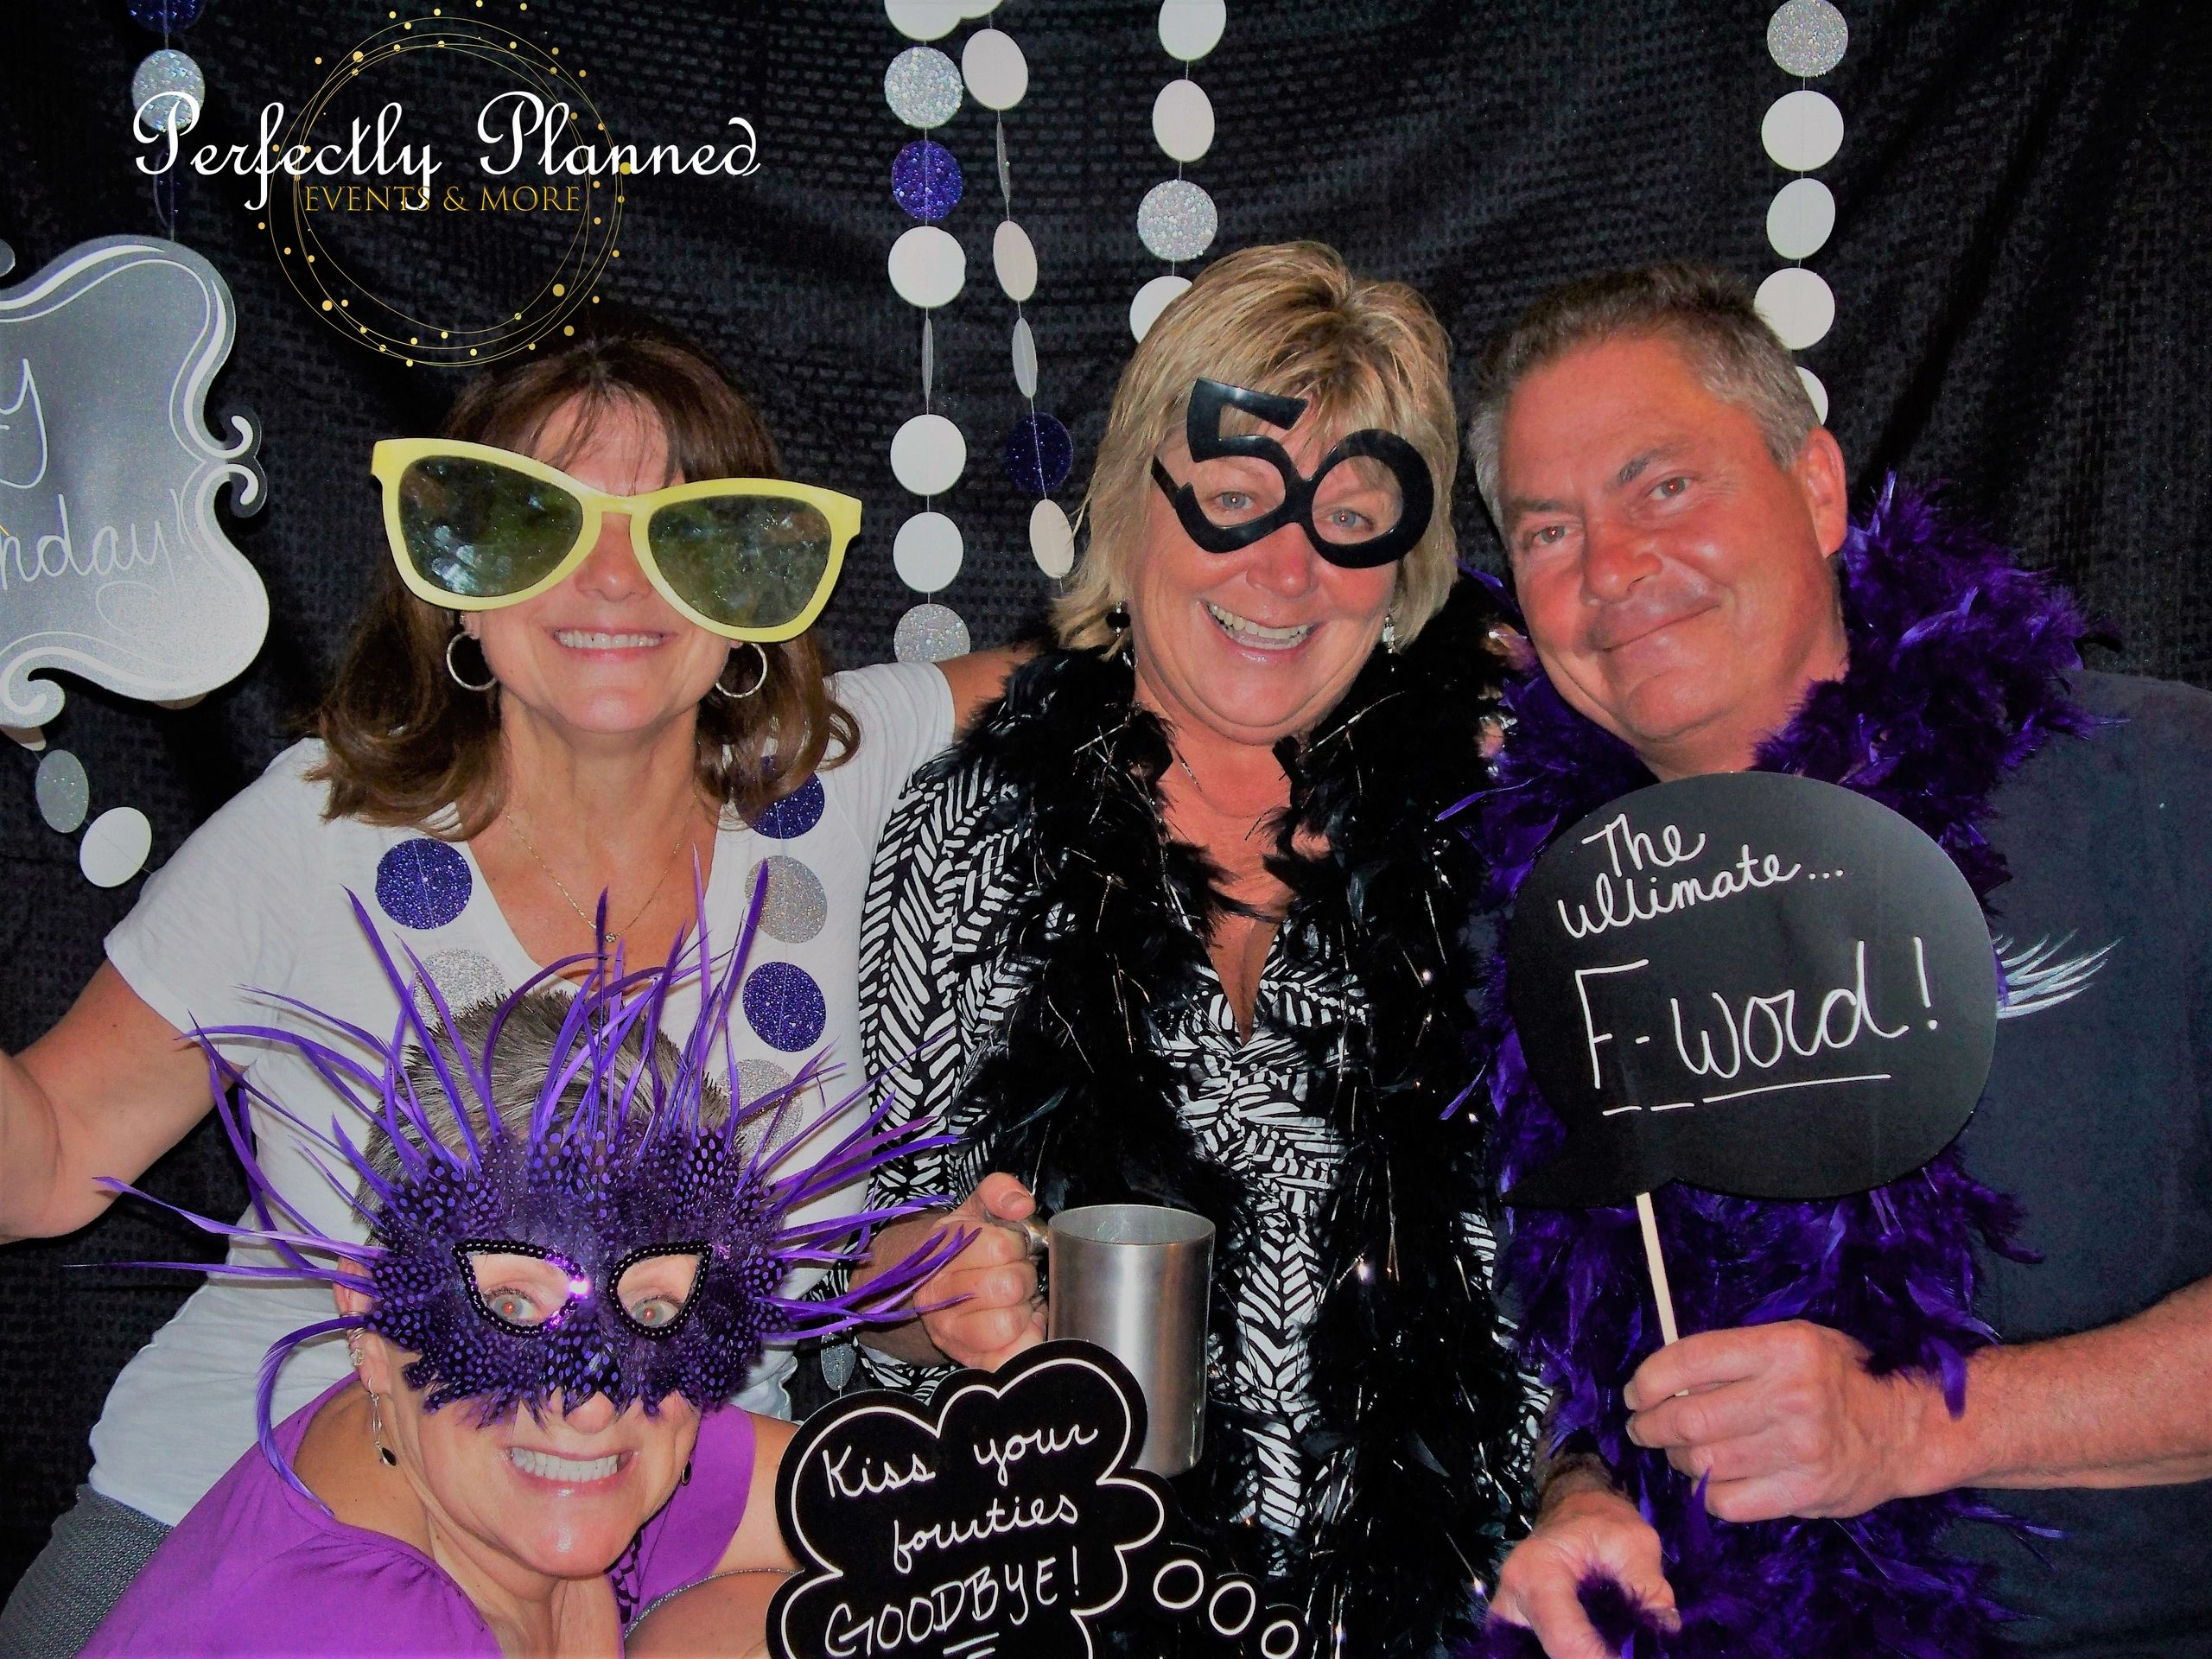 Surprise 50th birthday party with photo booth! Photo Credit: Perfectly Planned - Events & More